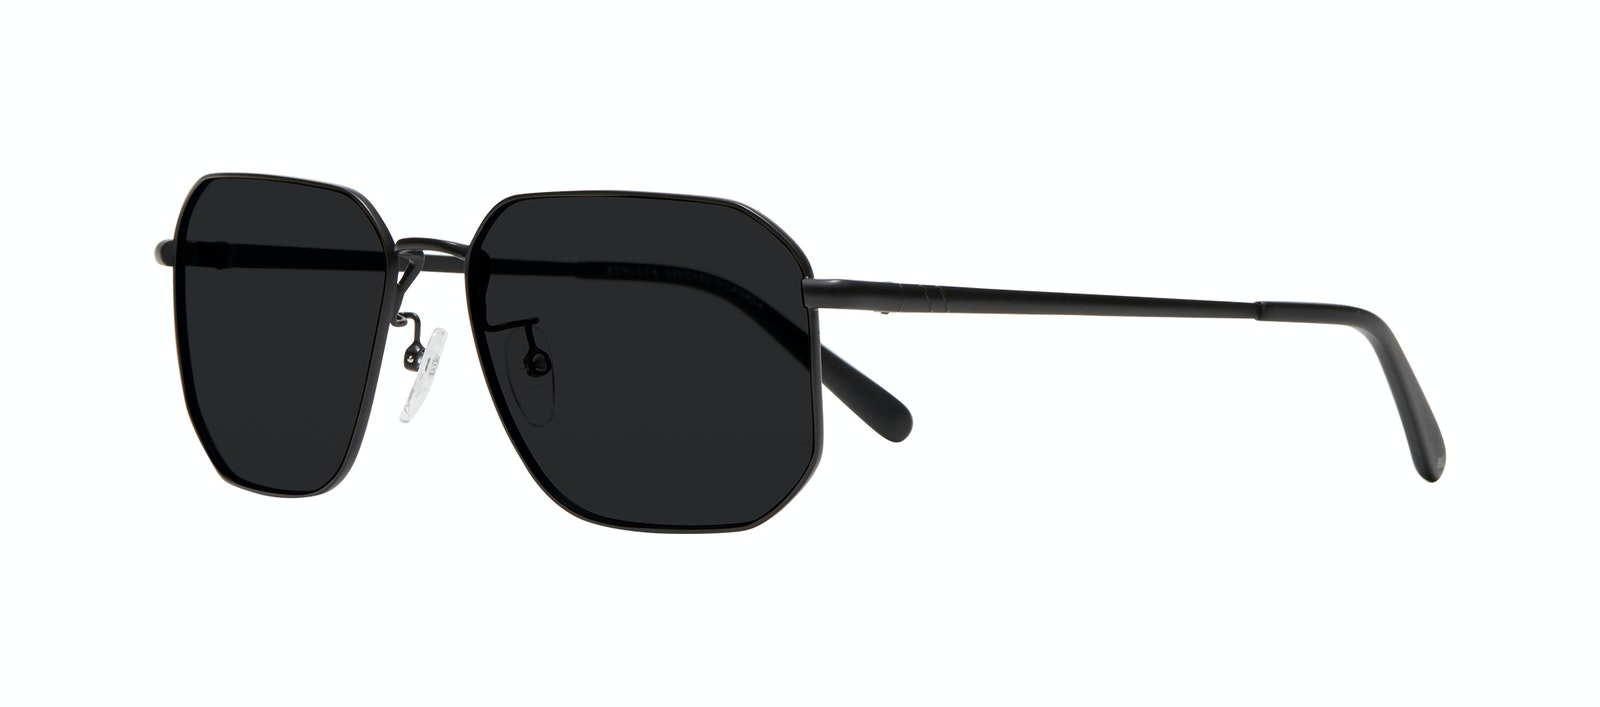 Affordable Fashion Glasses Square Sunglasses Men Timeless Matte Black Tilt